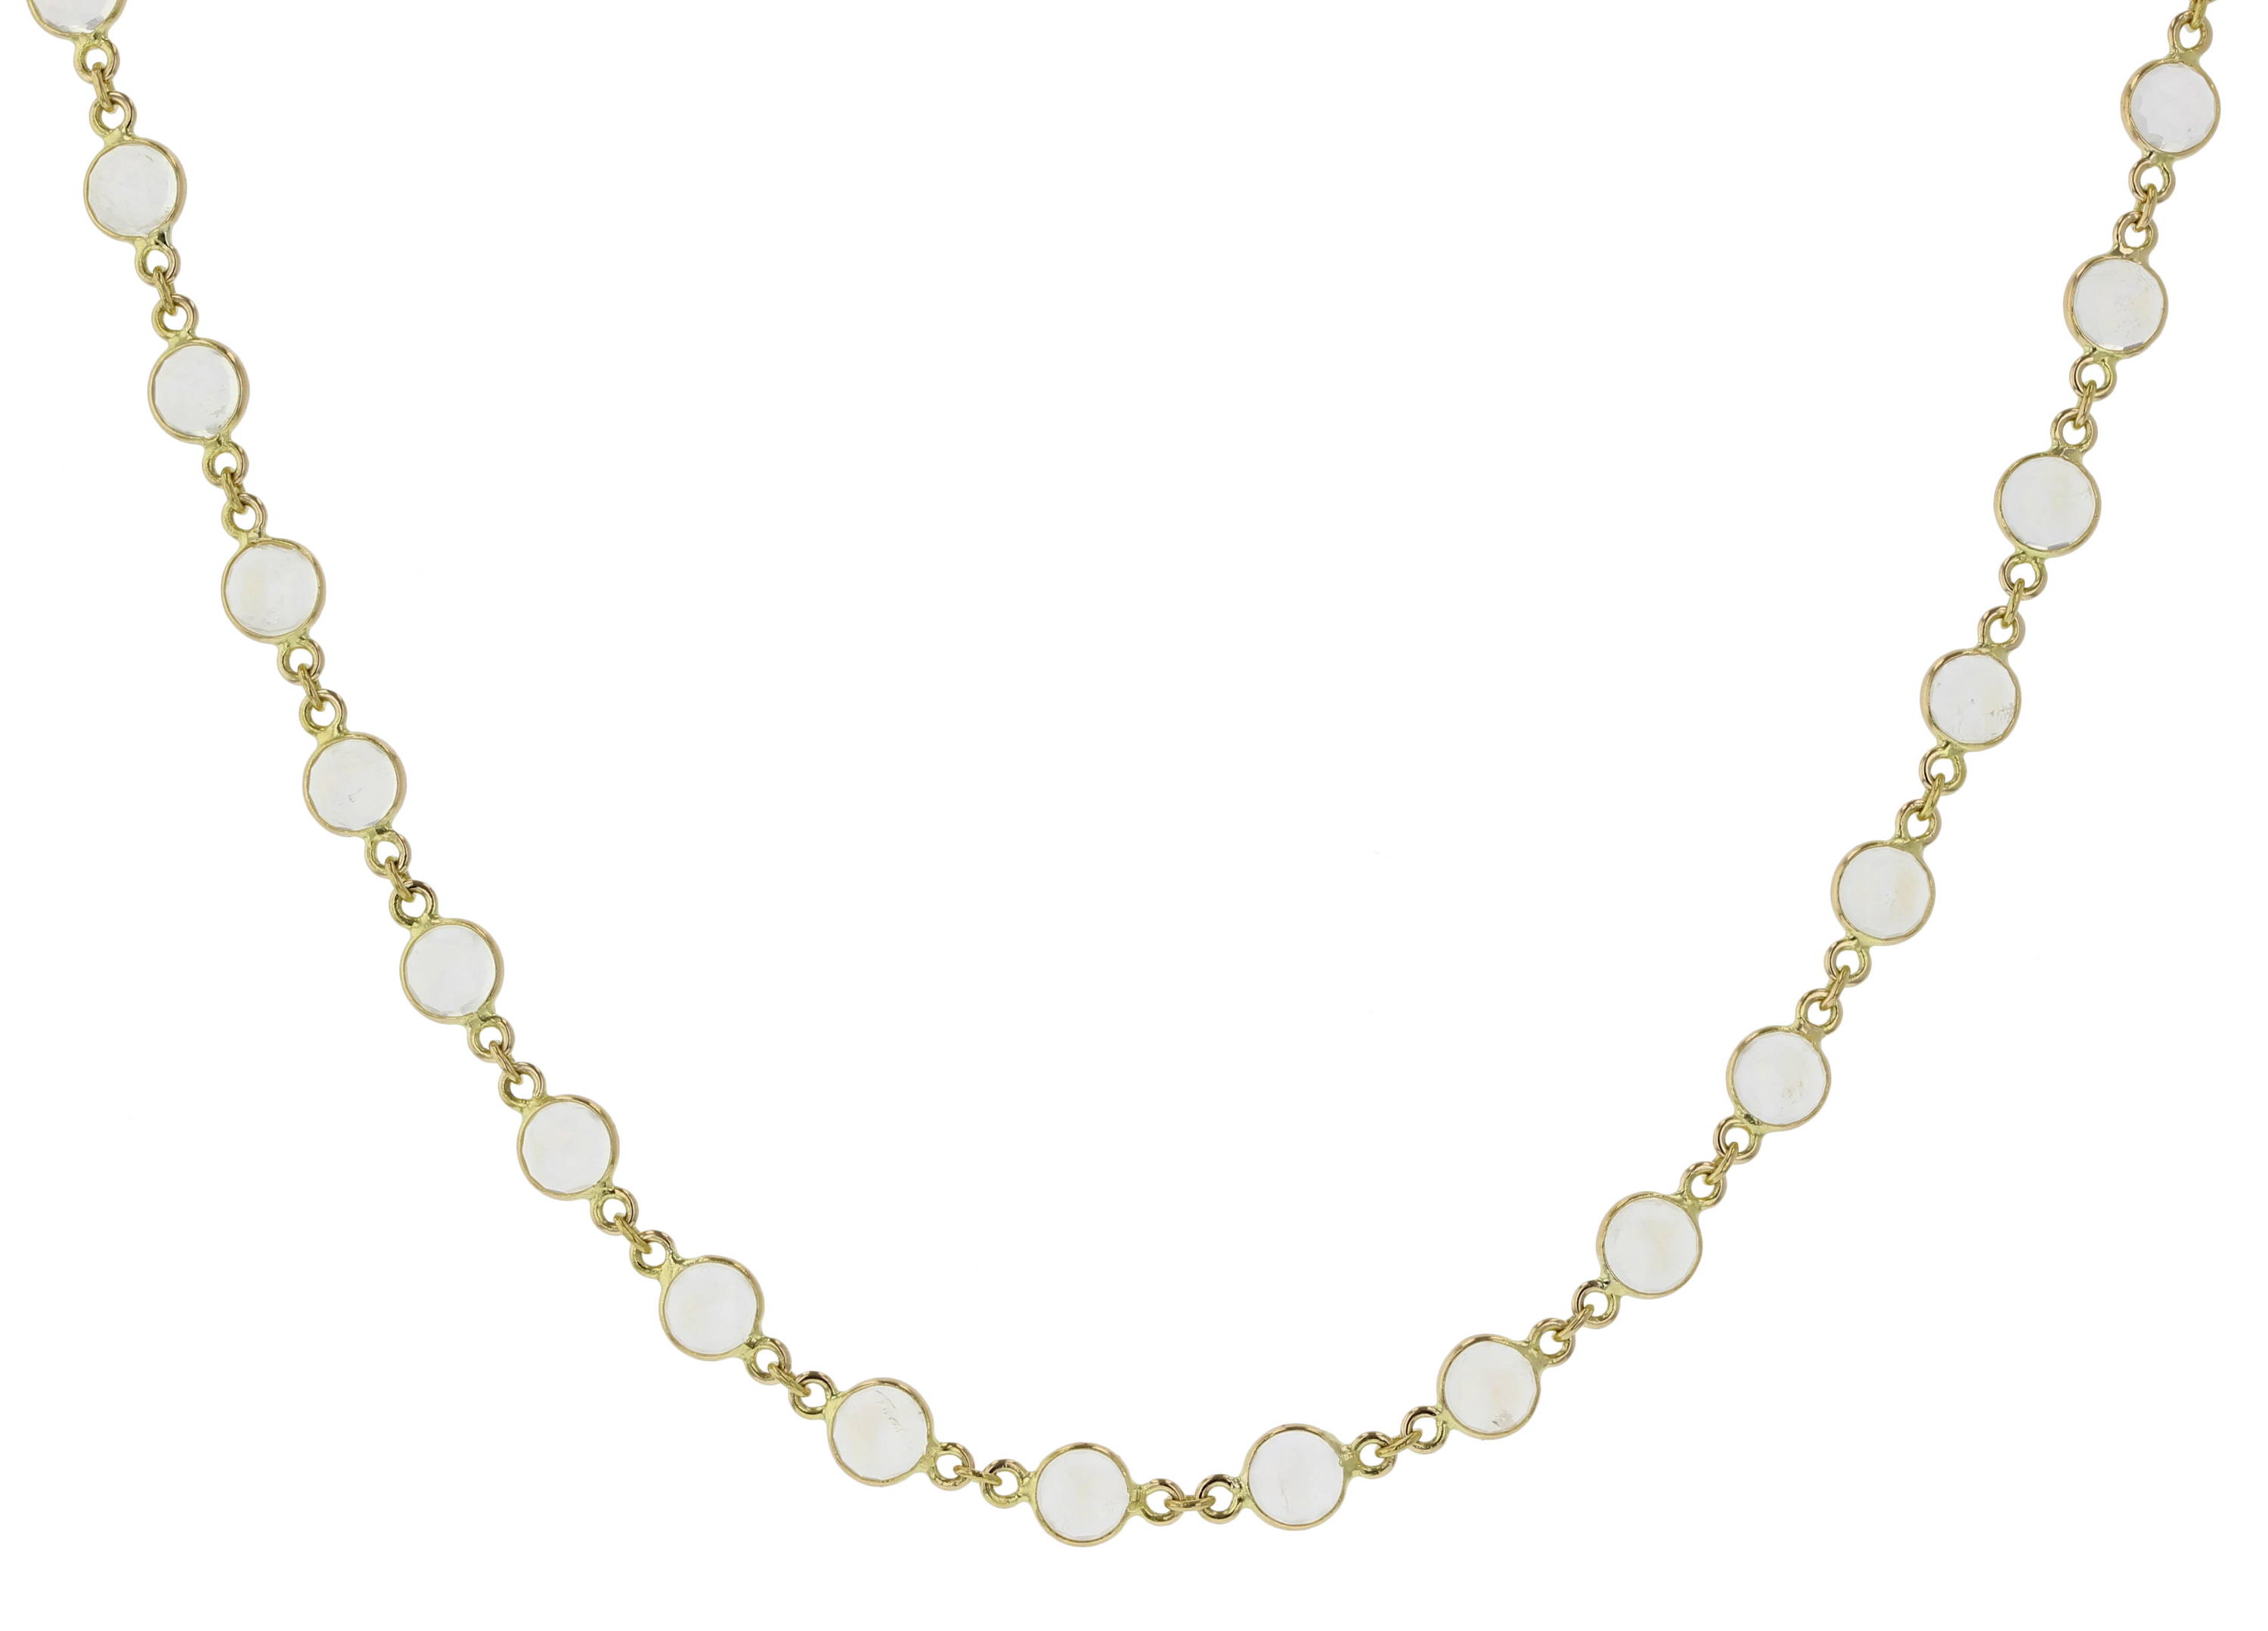 Penny Preville Moonstone Necklace